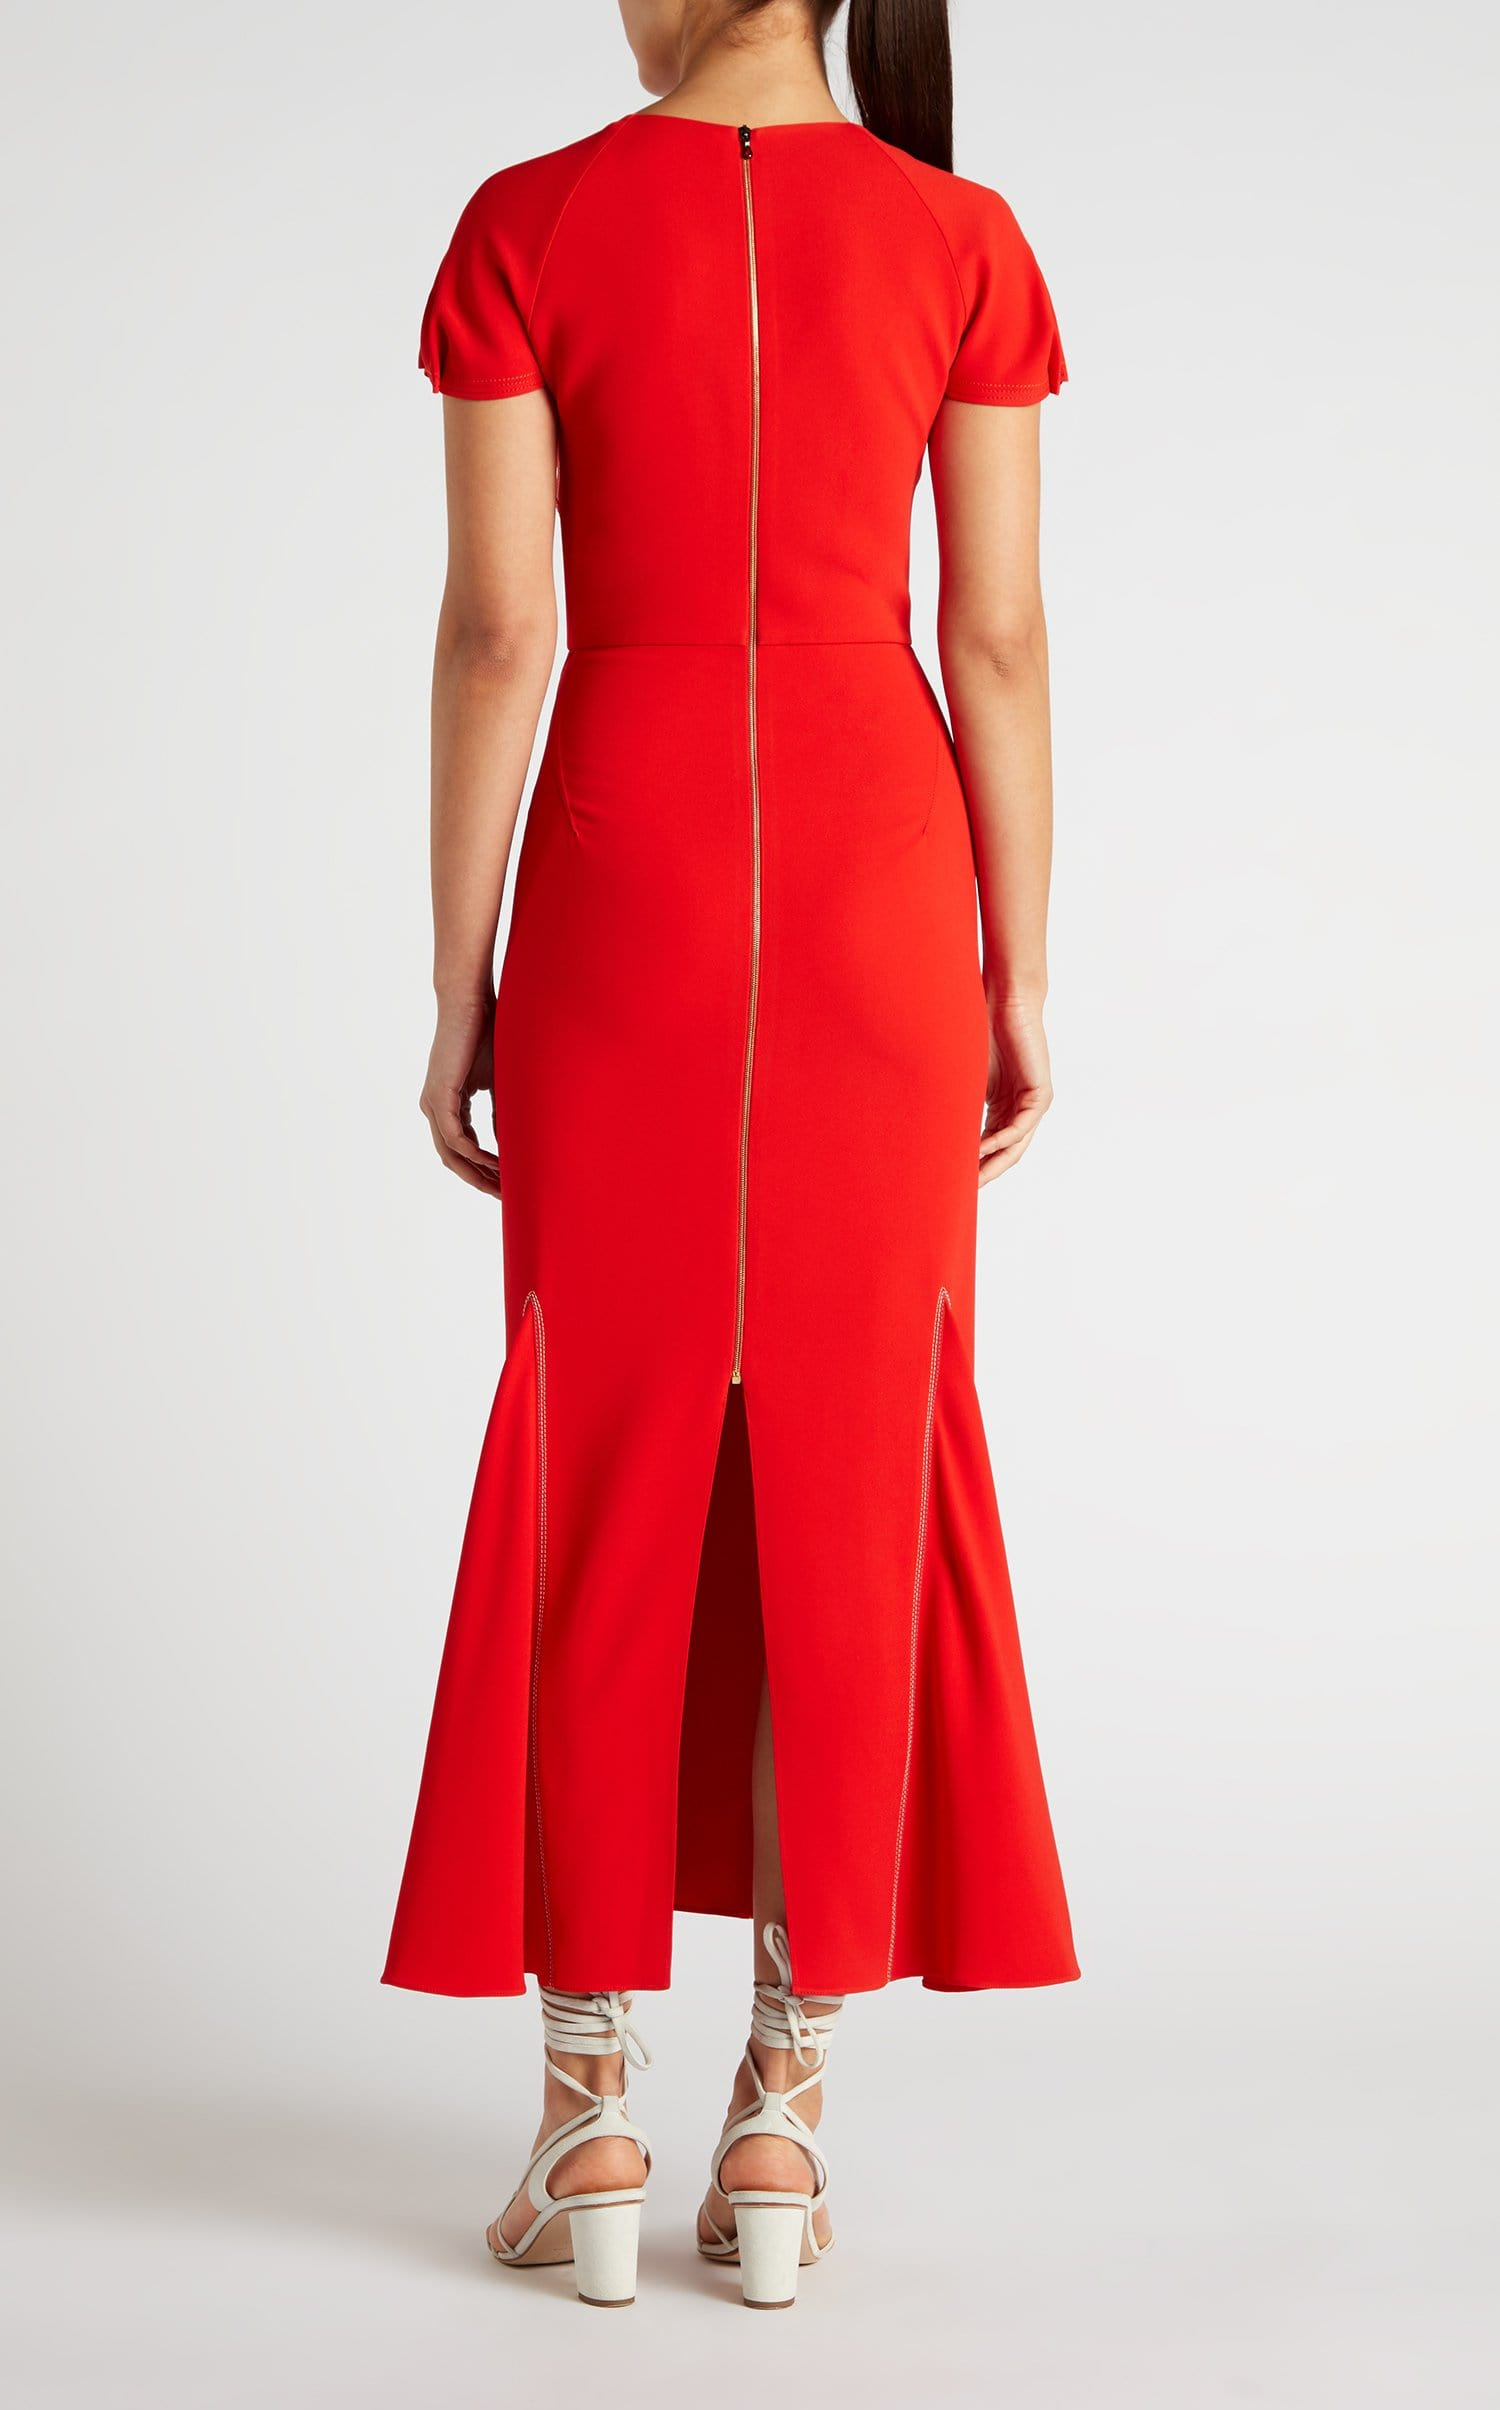 Bates Dress In Poppy Red Multi from Roland Mouret